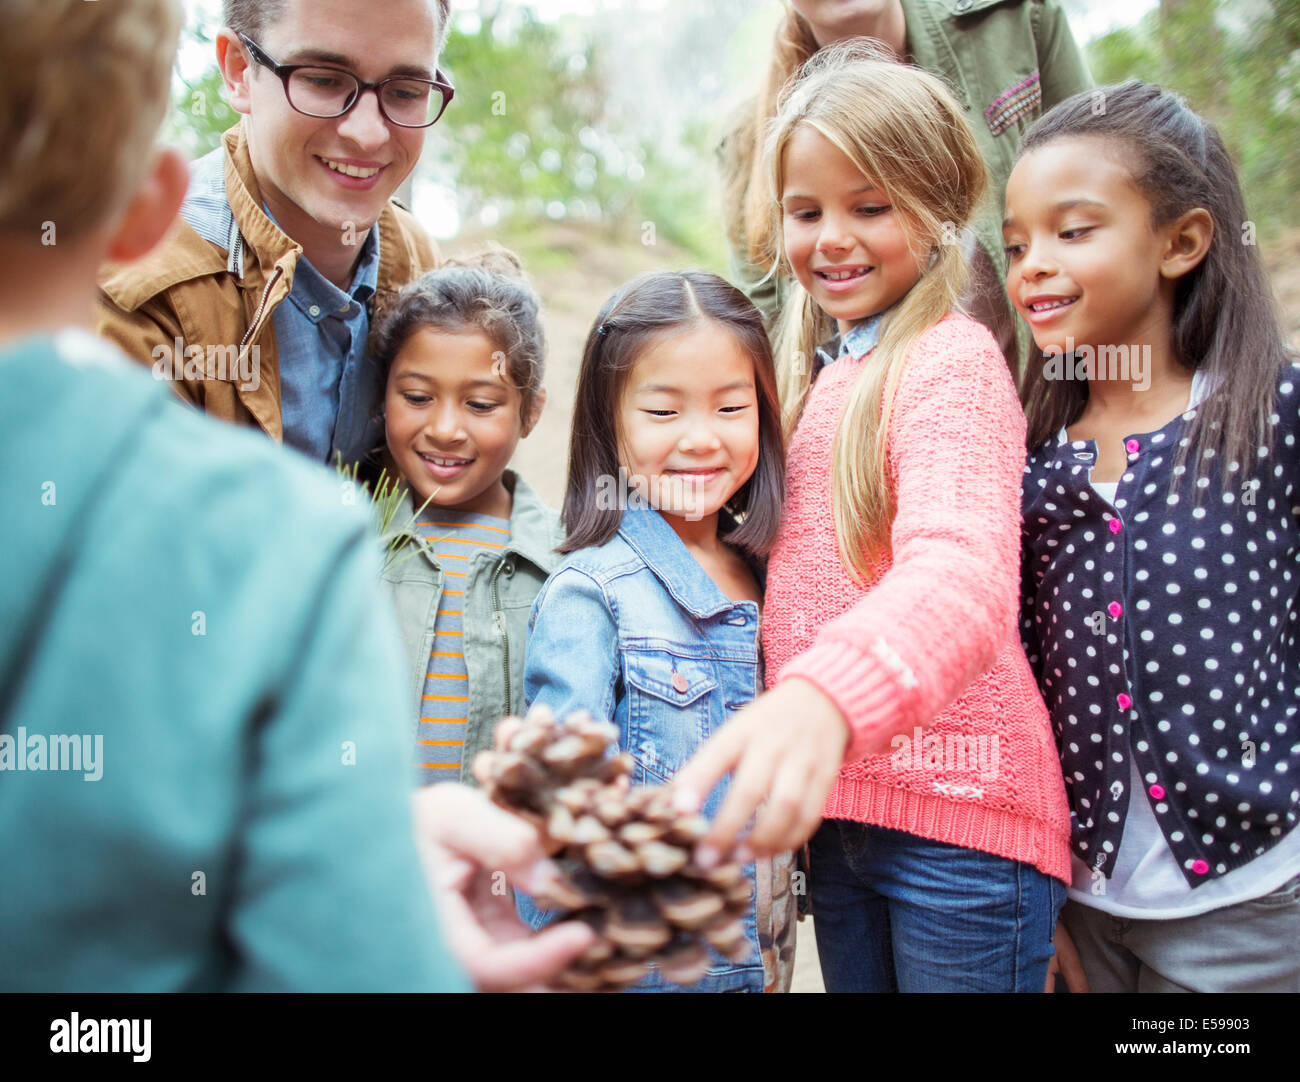 Students and teacher examining pine cone in forest - Stock Image